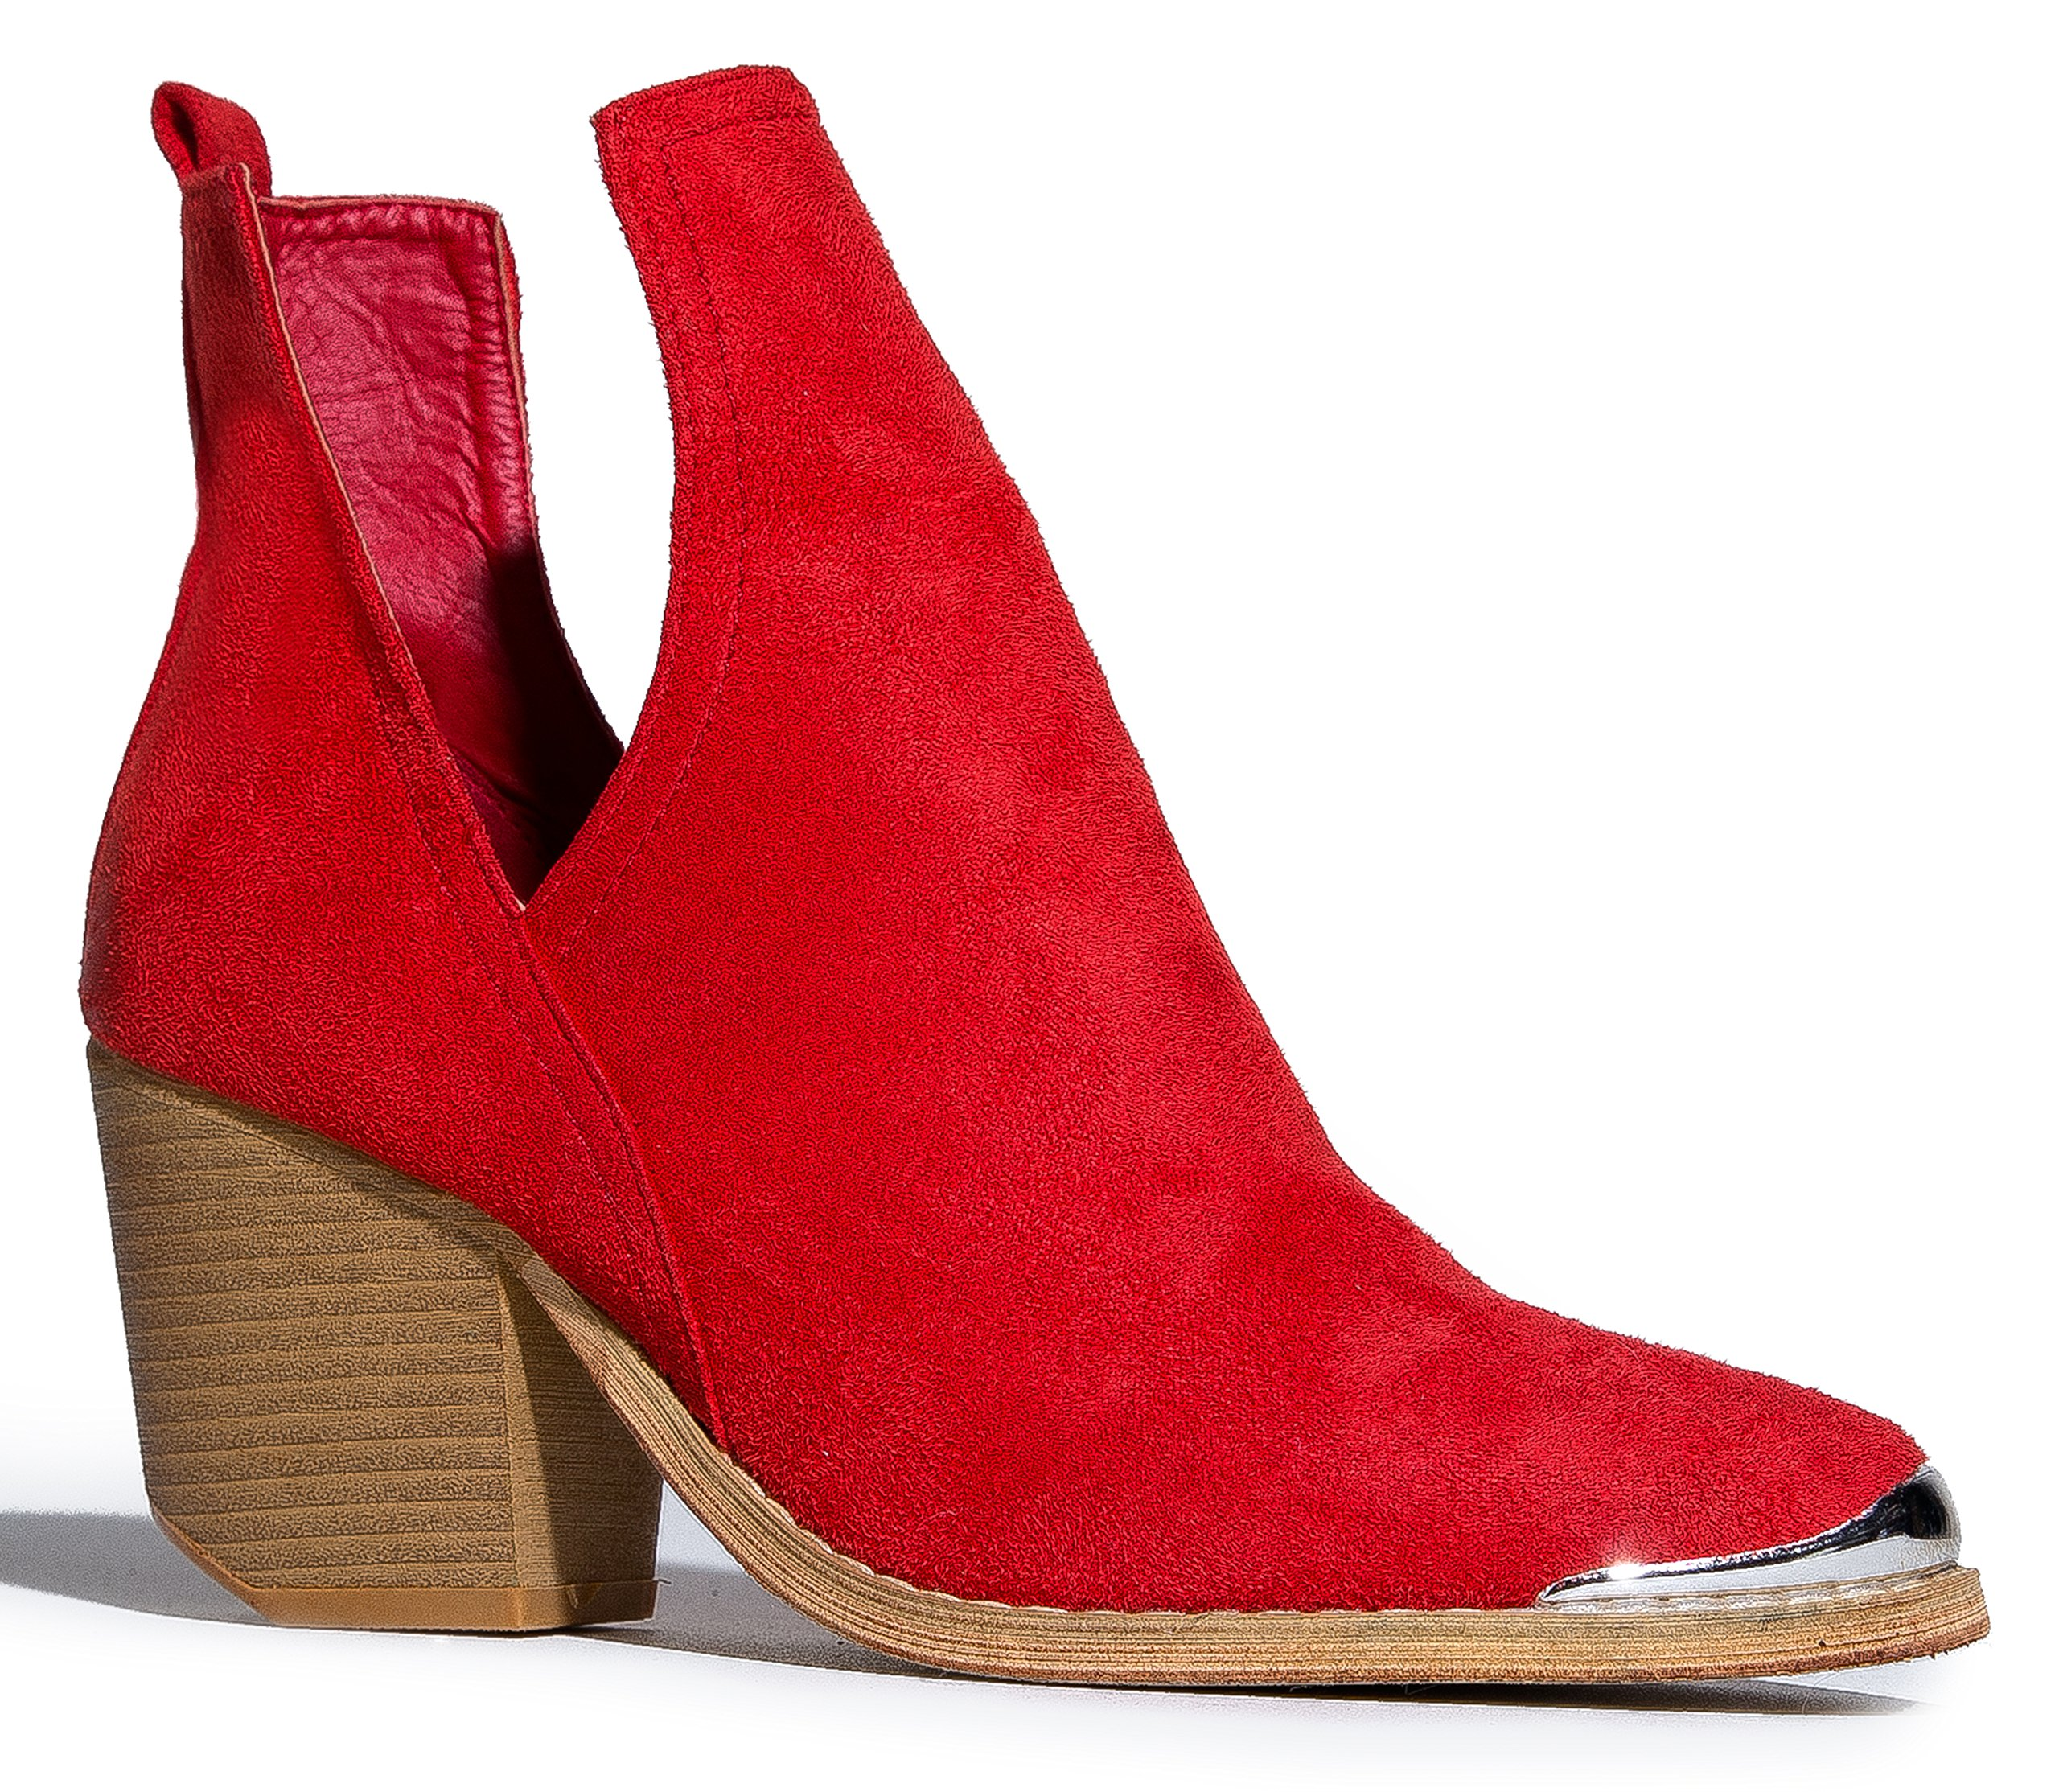 TESS-04 Side Cutout Metal Tipped Toe Ankle Boot Bootie 6.5 RED